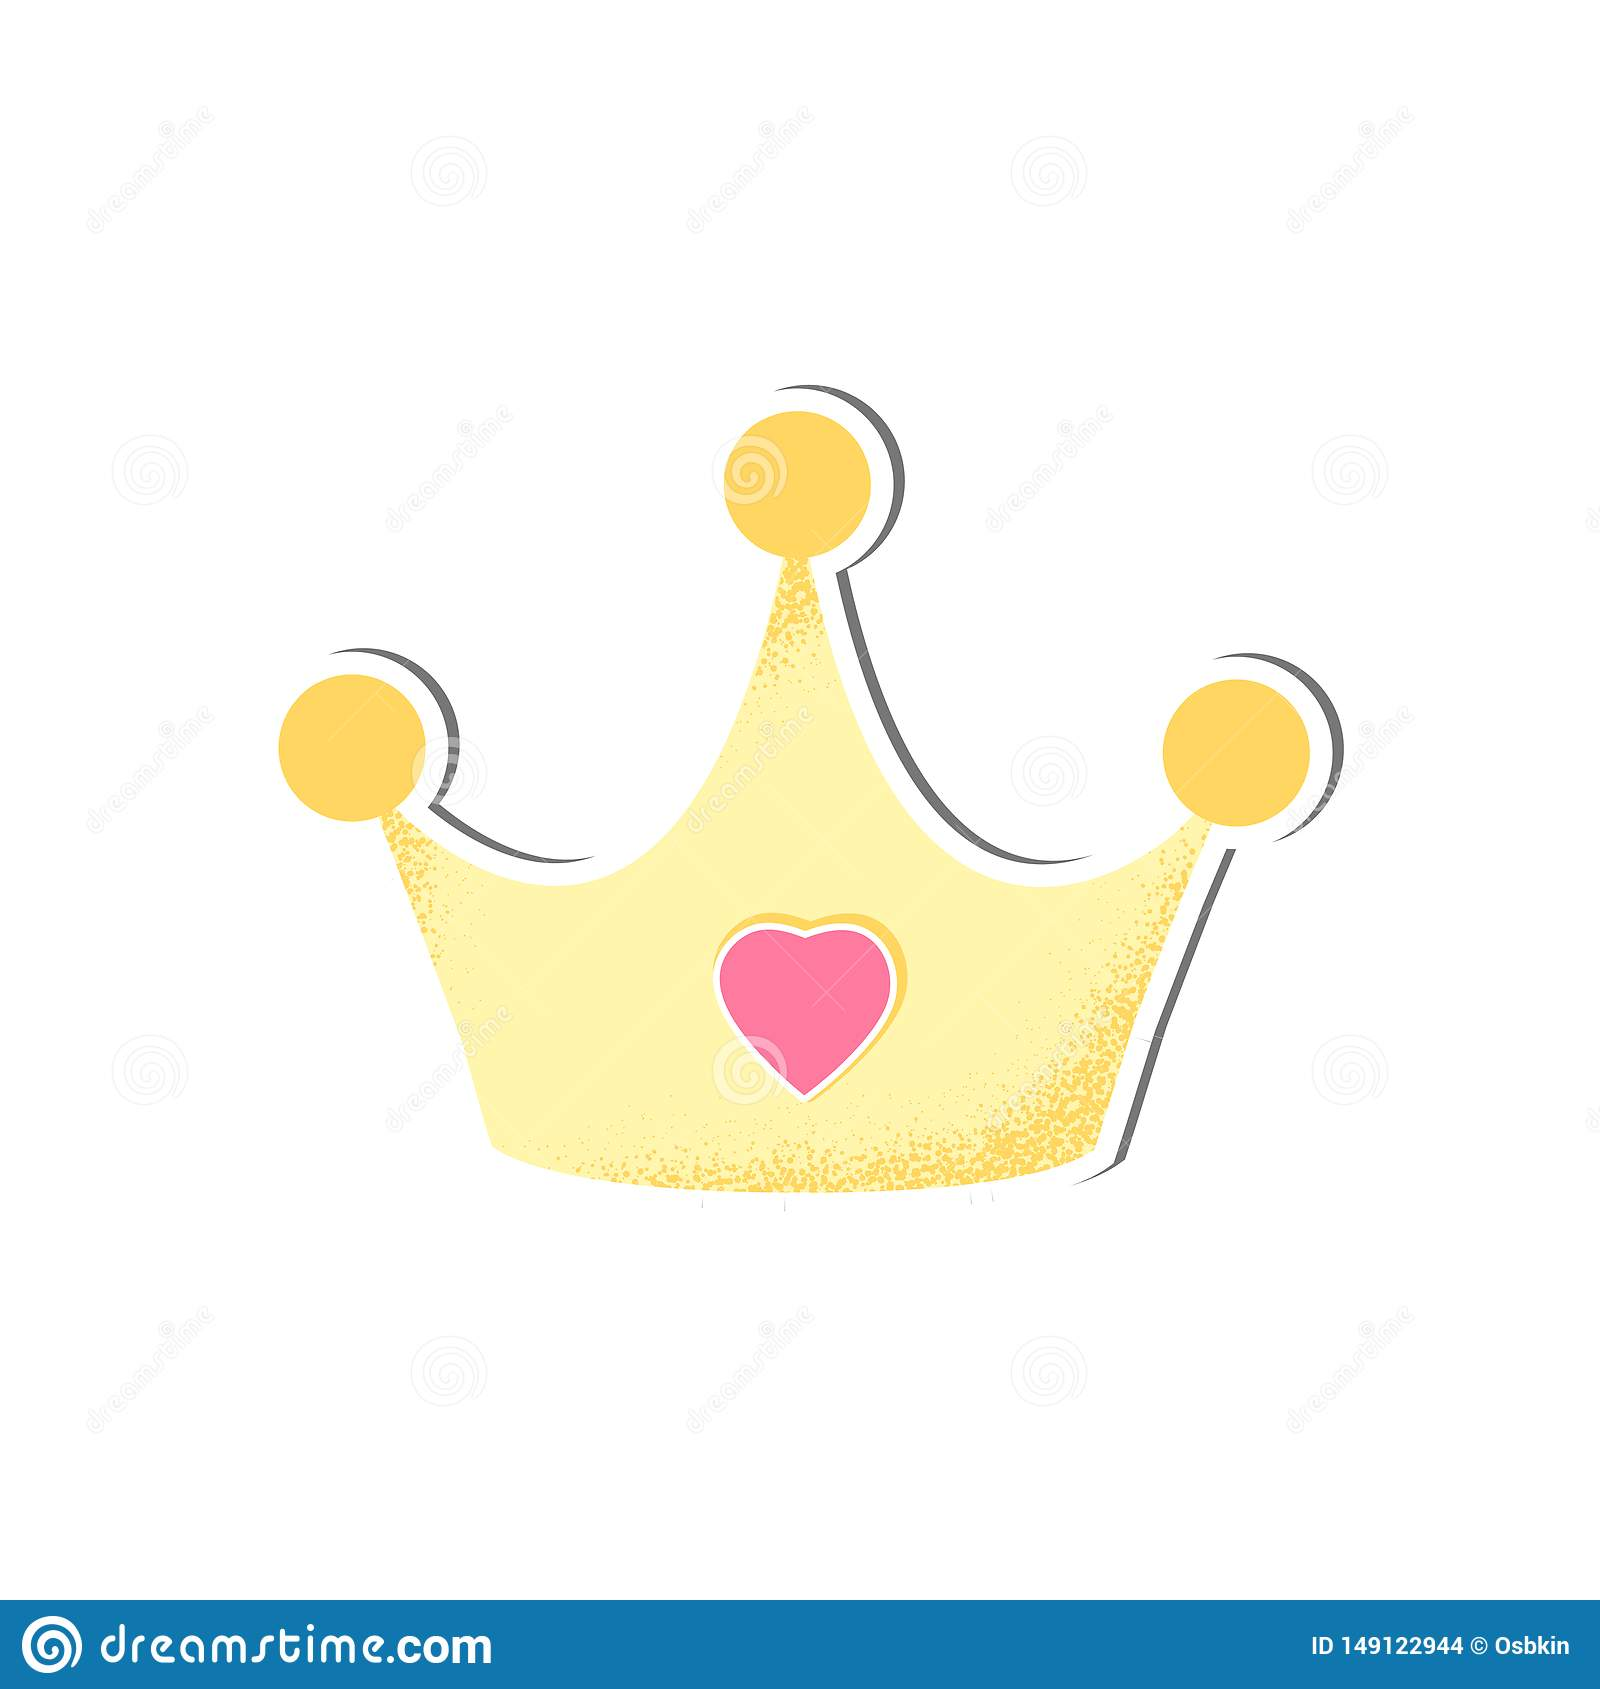 Baby Isolated Crown Vector For Girl Stock Vector Illustration Of Cartoon King 149122944 King crown simple king crown golden vector king crown cartoon. https www dreamstime com baby isolated crown vector girl cartoon style icon wear happy child simple object shower card accessory illustration image149122944